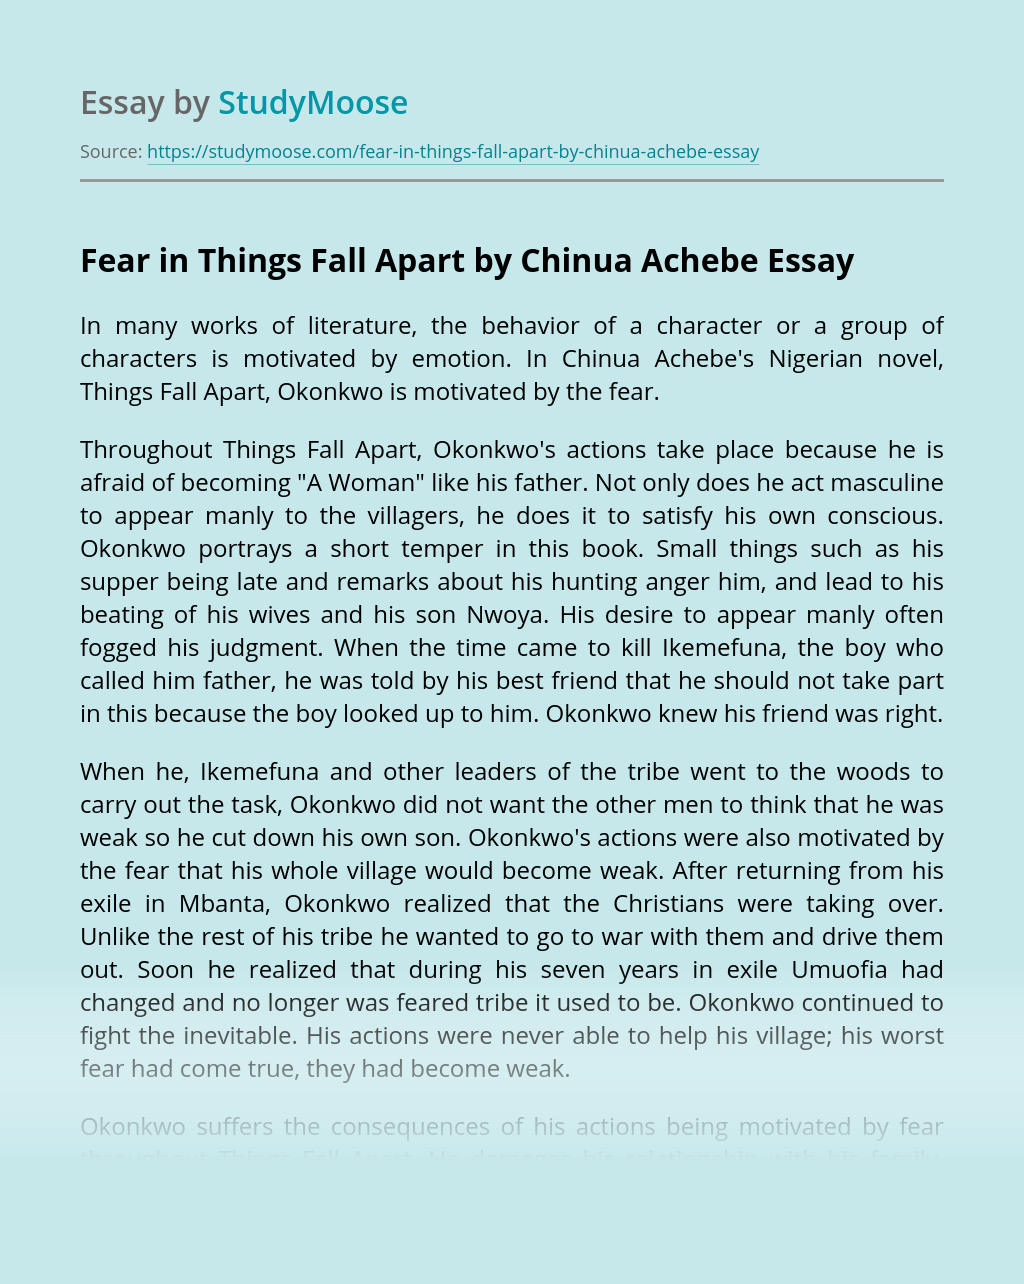 Fear in Things Fall Apart by Chinua Achebe